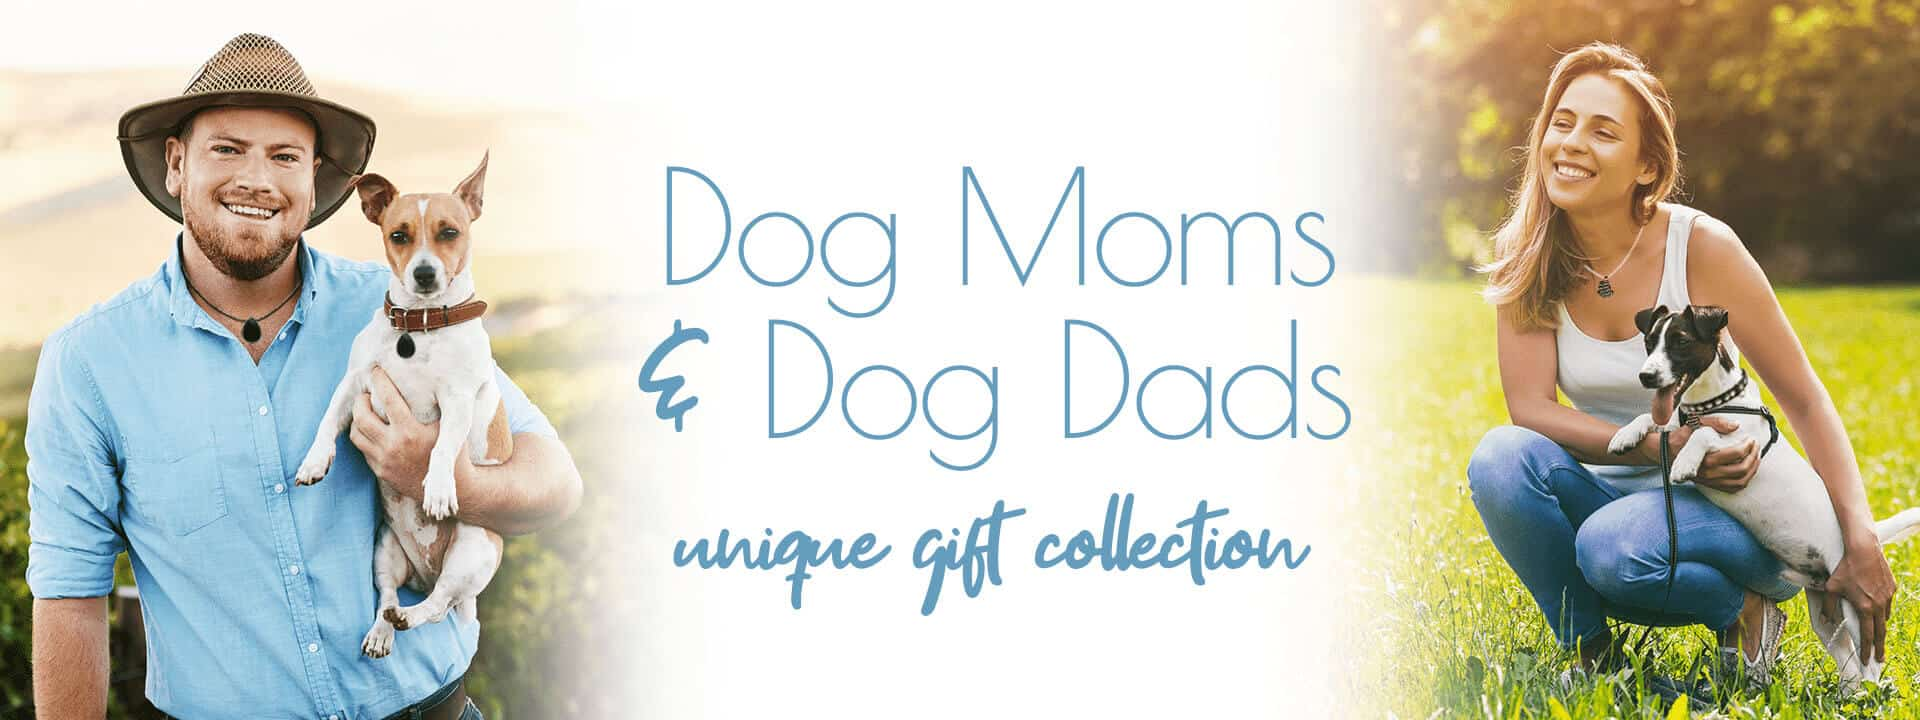 unique-gifts-dog-mom-dog-dads-pet-parents